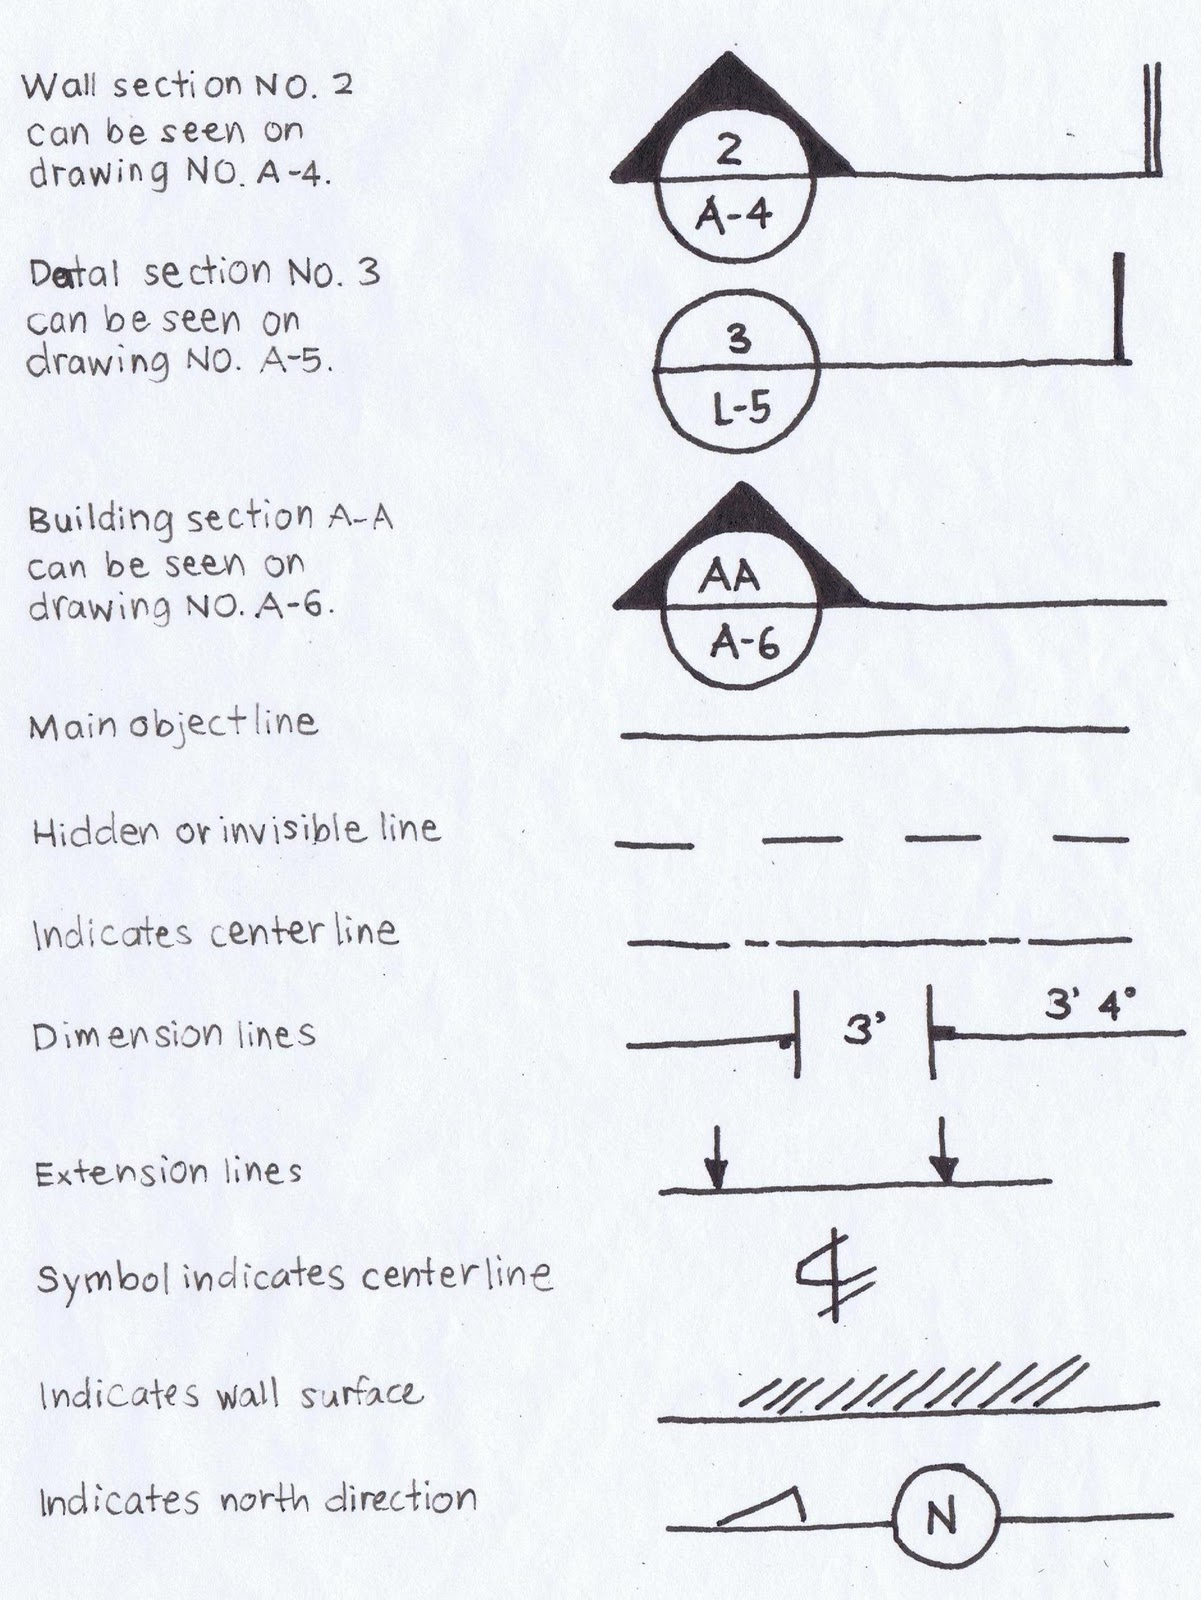 Floor Plan And Elevation Symbols : Oh design drawing templates